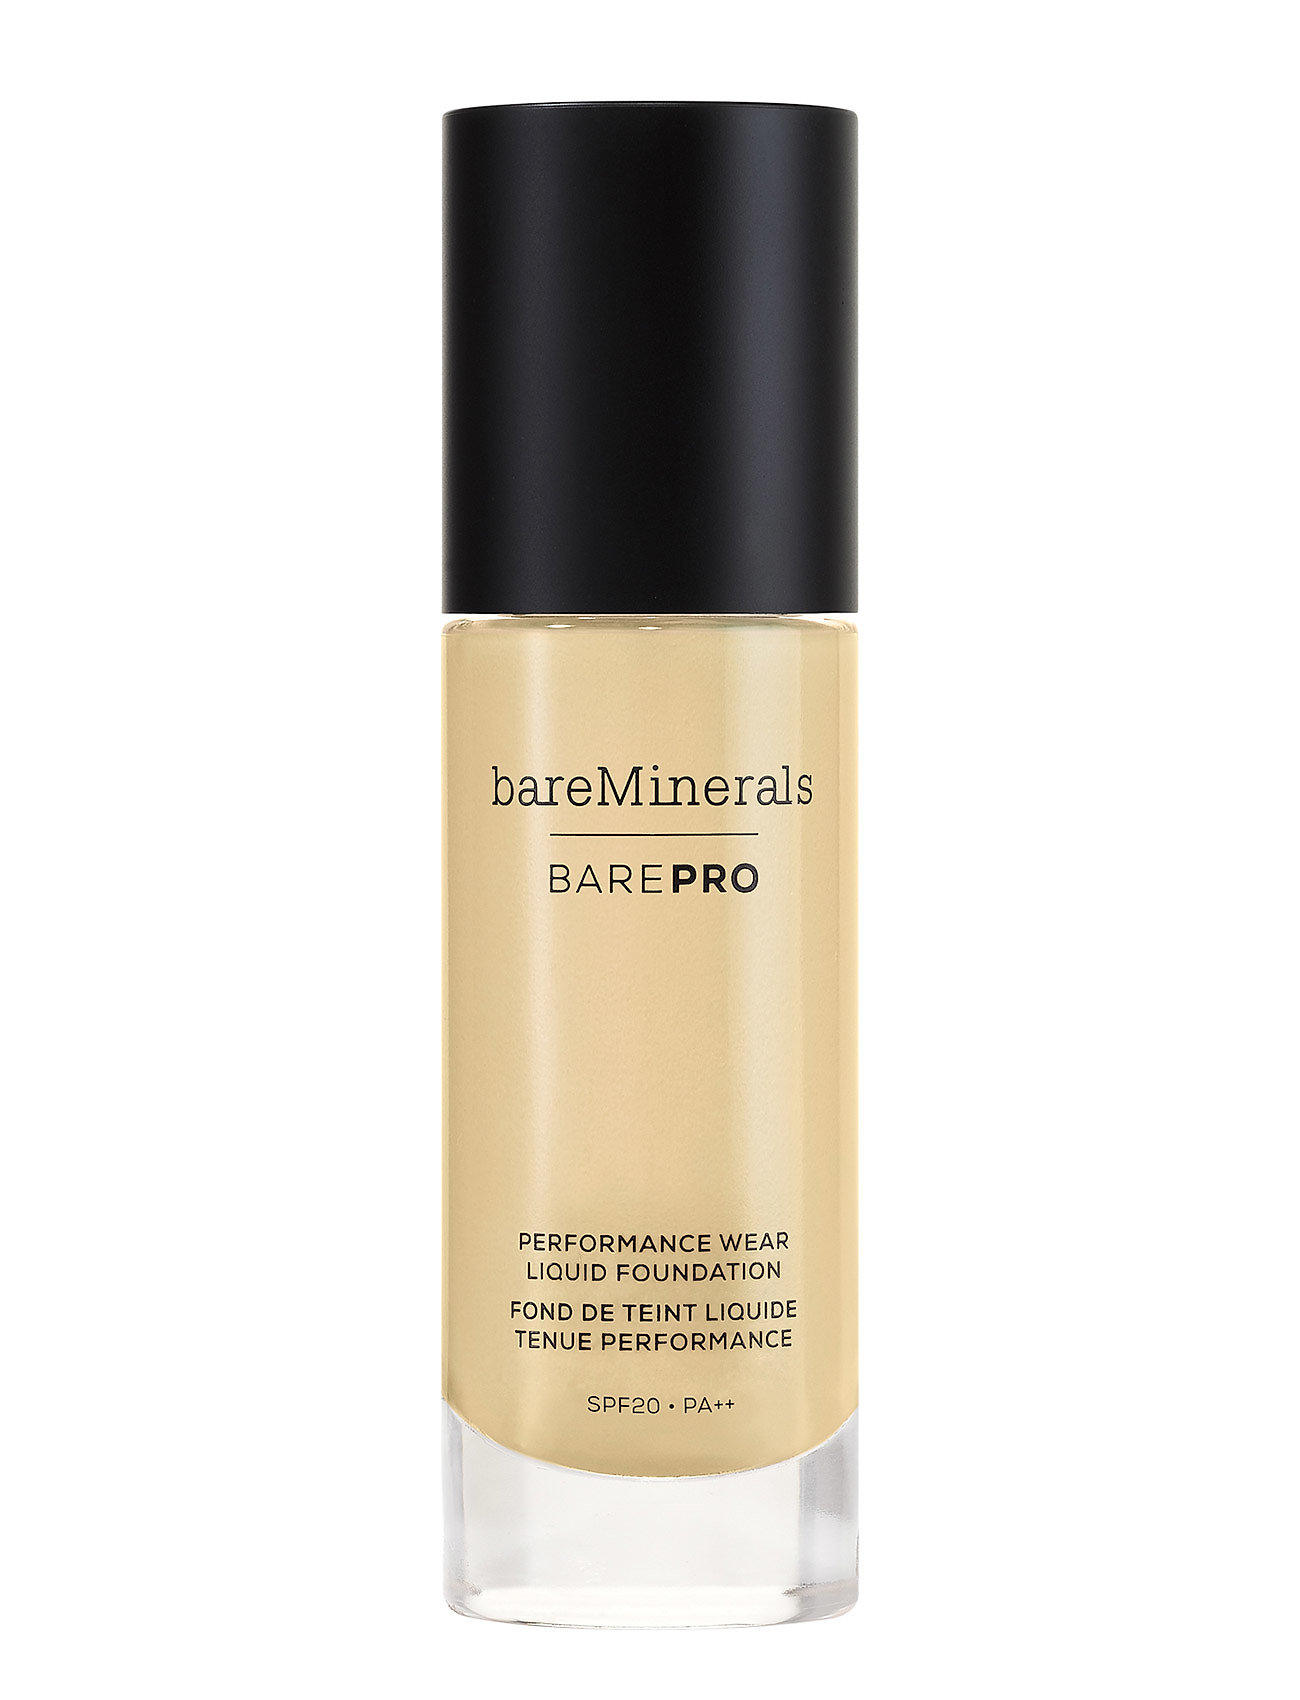 Image of Barepro Performance Wear Liquid Foundation Spf 20 Foundation Makeup BareMinerals (3067521601)